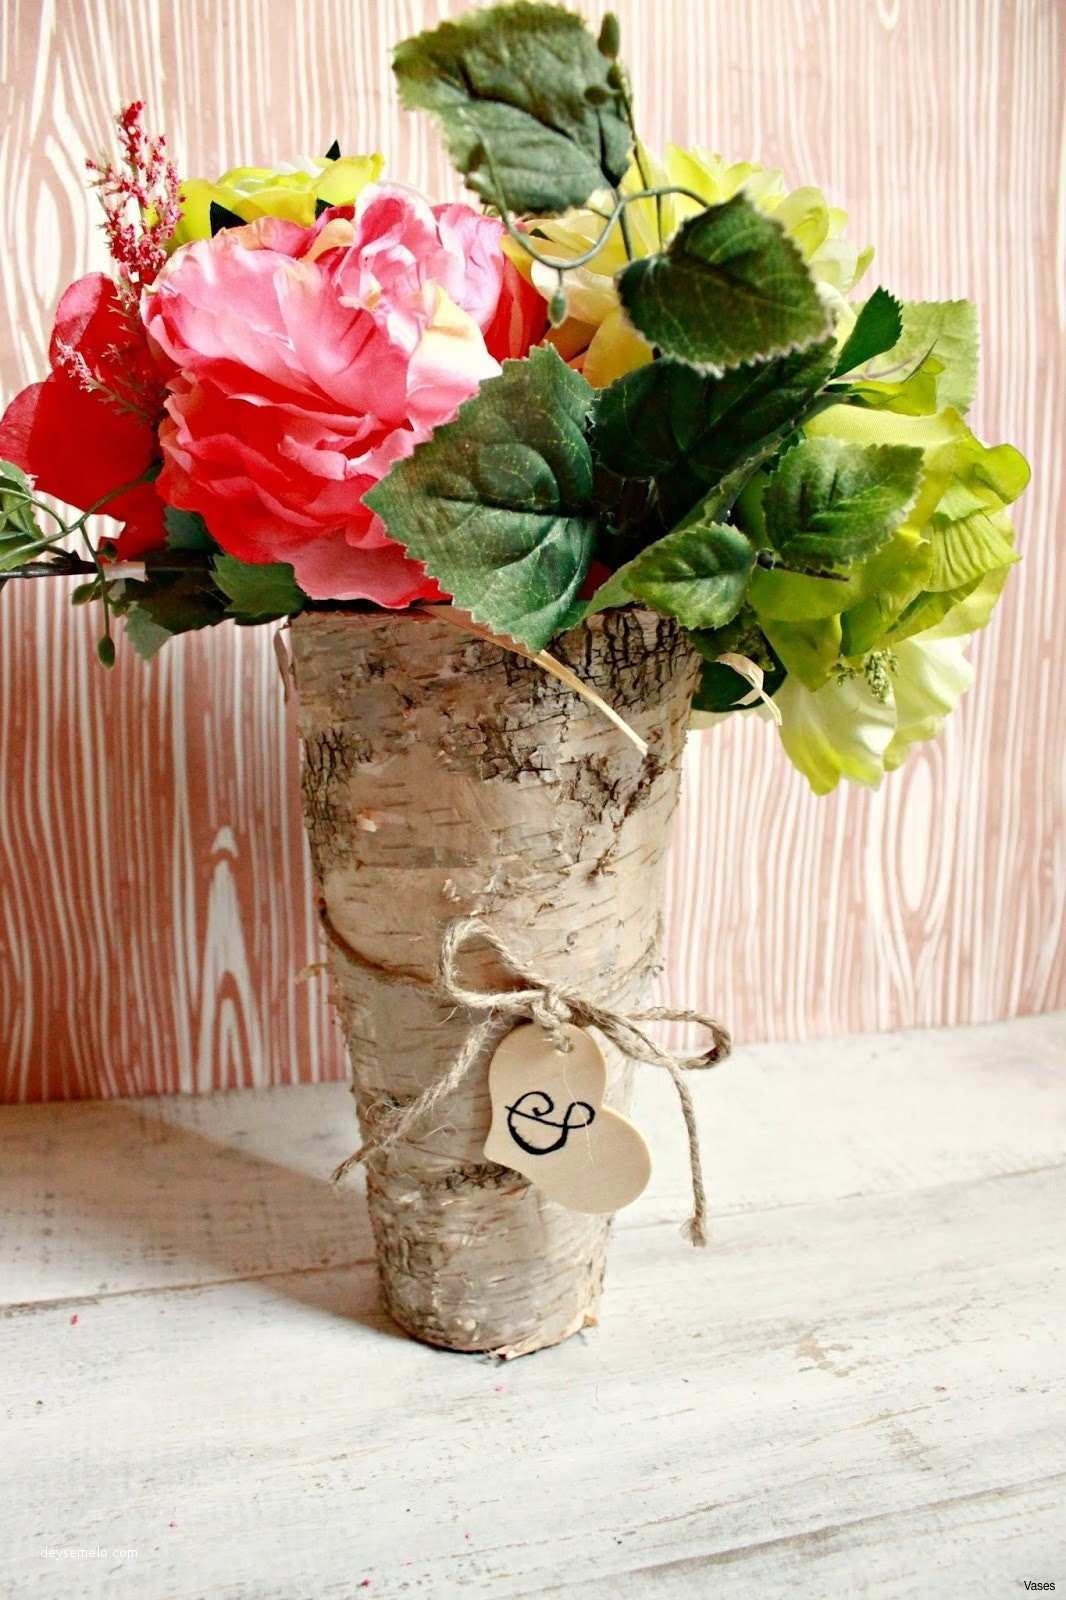 tall vase table centerpieces of neutral ebay wedding table decorations of fresh flowers for wedding throughout neutral ebay wedding table decorations of fresh flowers for wedding h vases diy wood vase i 0d base turntable